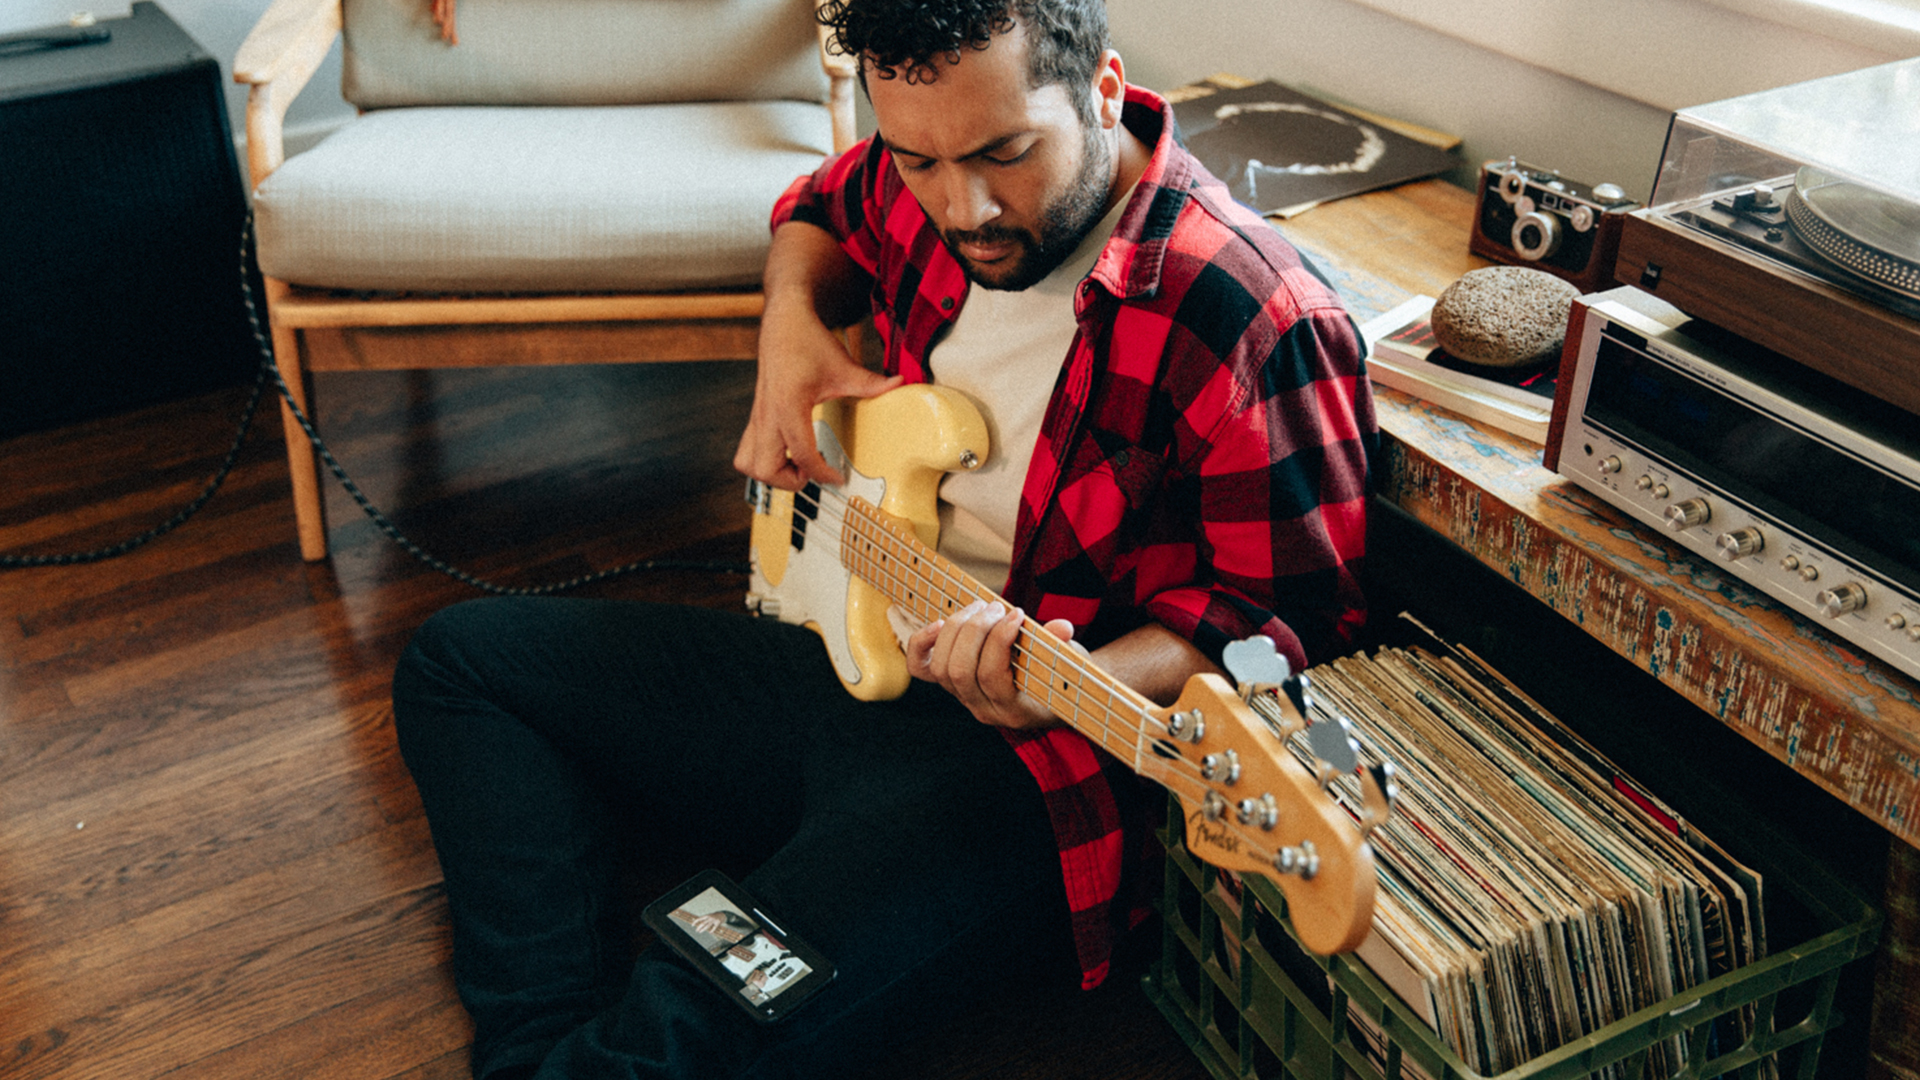 Fender expand Fender Play platform with bass lessons